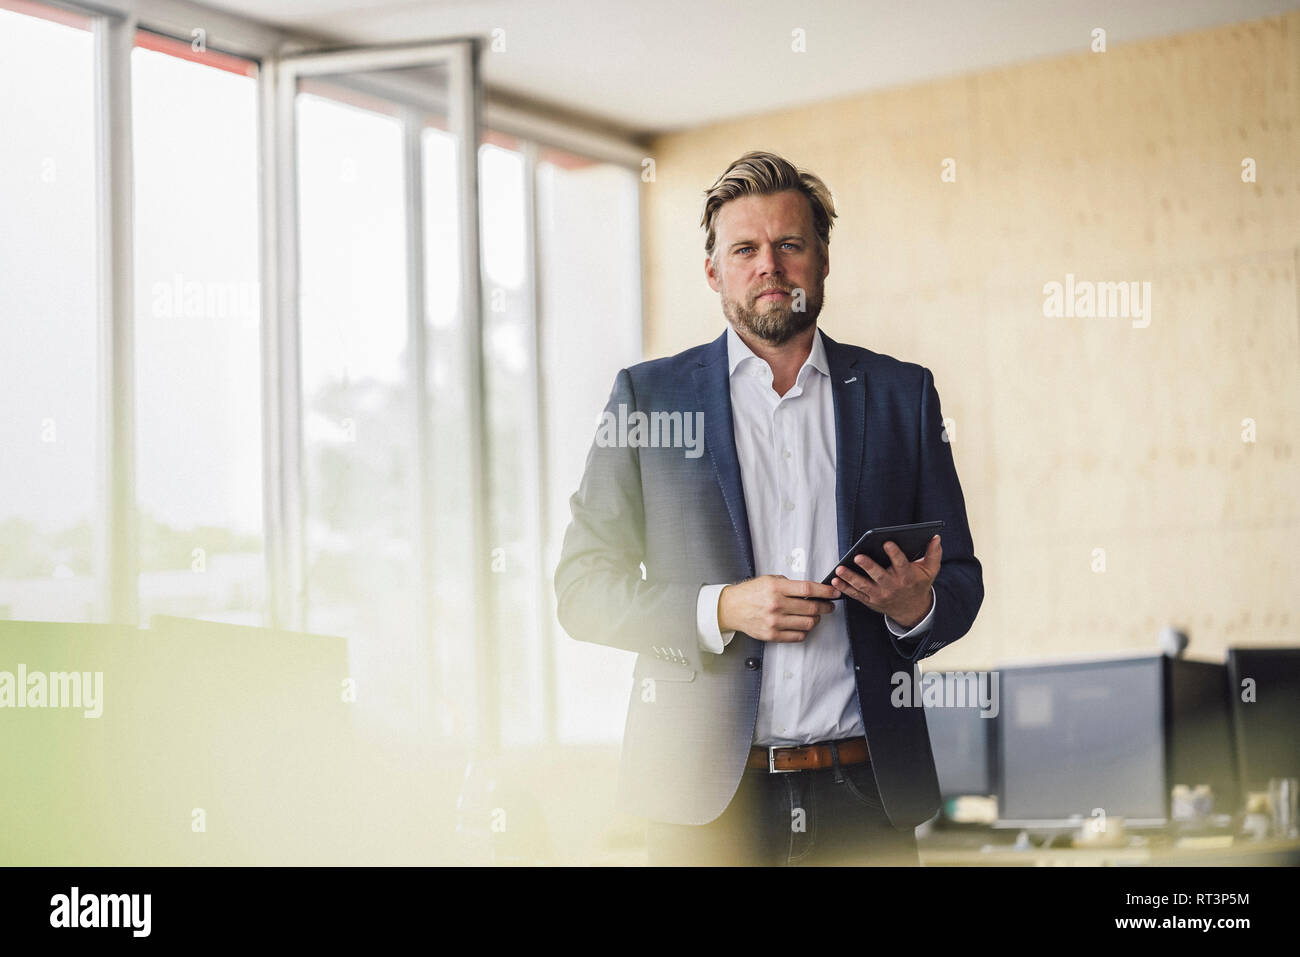 Businessman standing in office, using digital talet - Stock Image